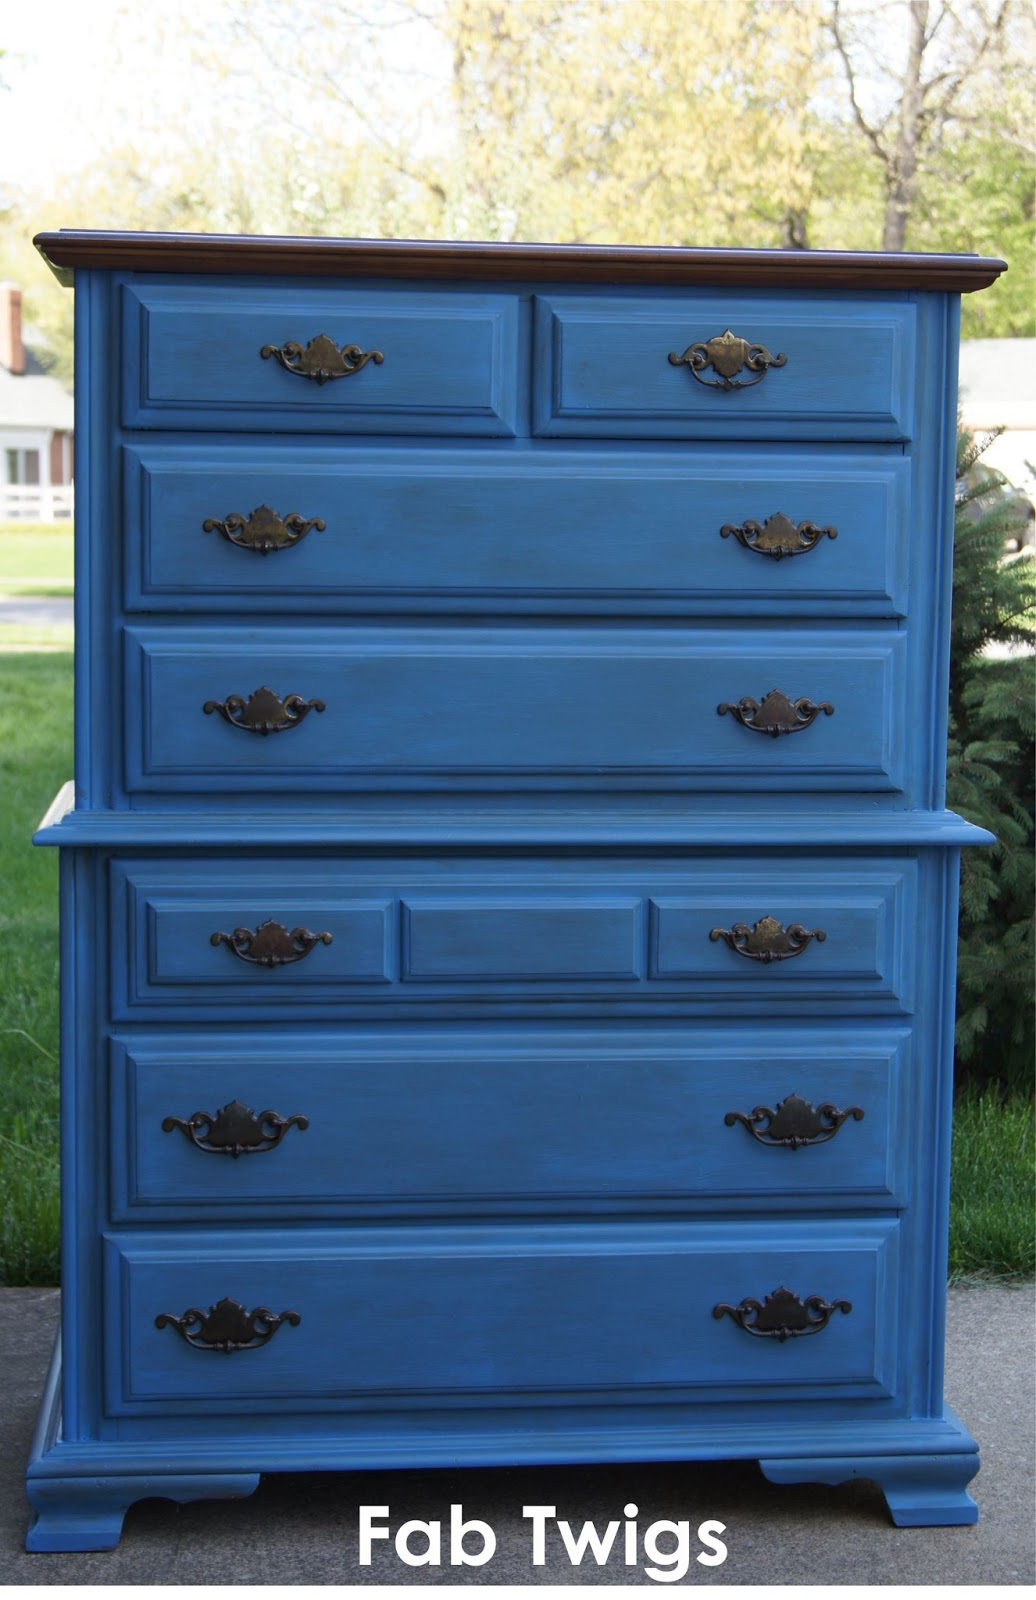 Fabtwigs dresser transformation painting furniture with Best color to paint dresser